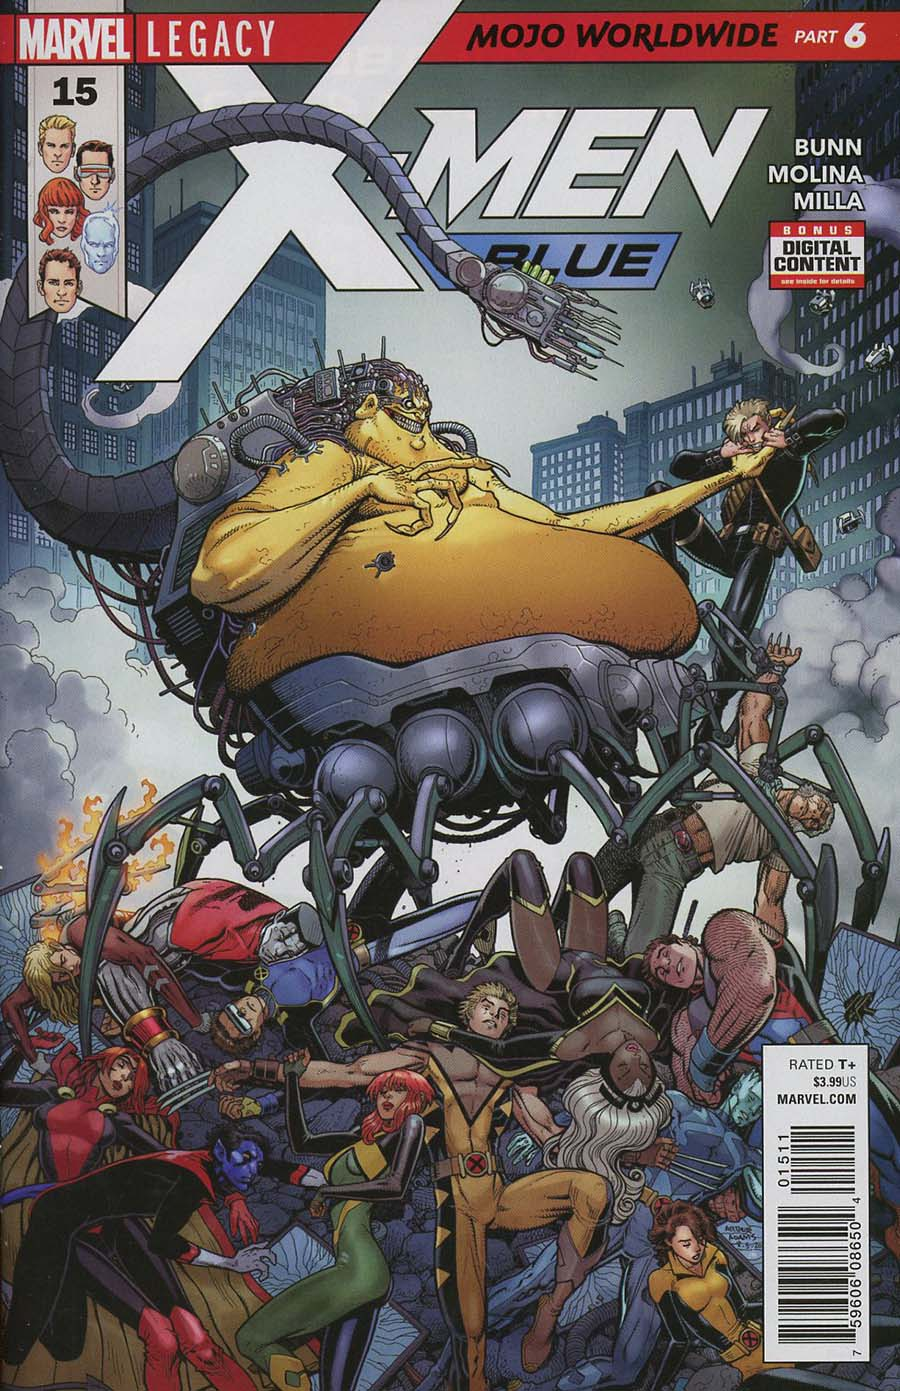 X-Men Blue #15 (Mojo Worldwide Part 6)(Marvel Legacy Tie-In)